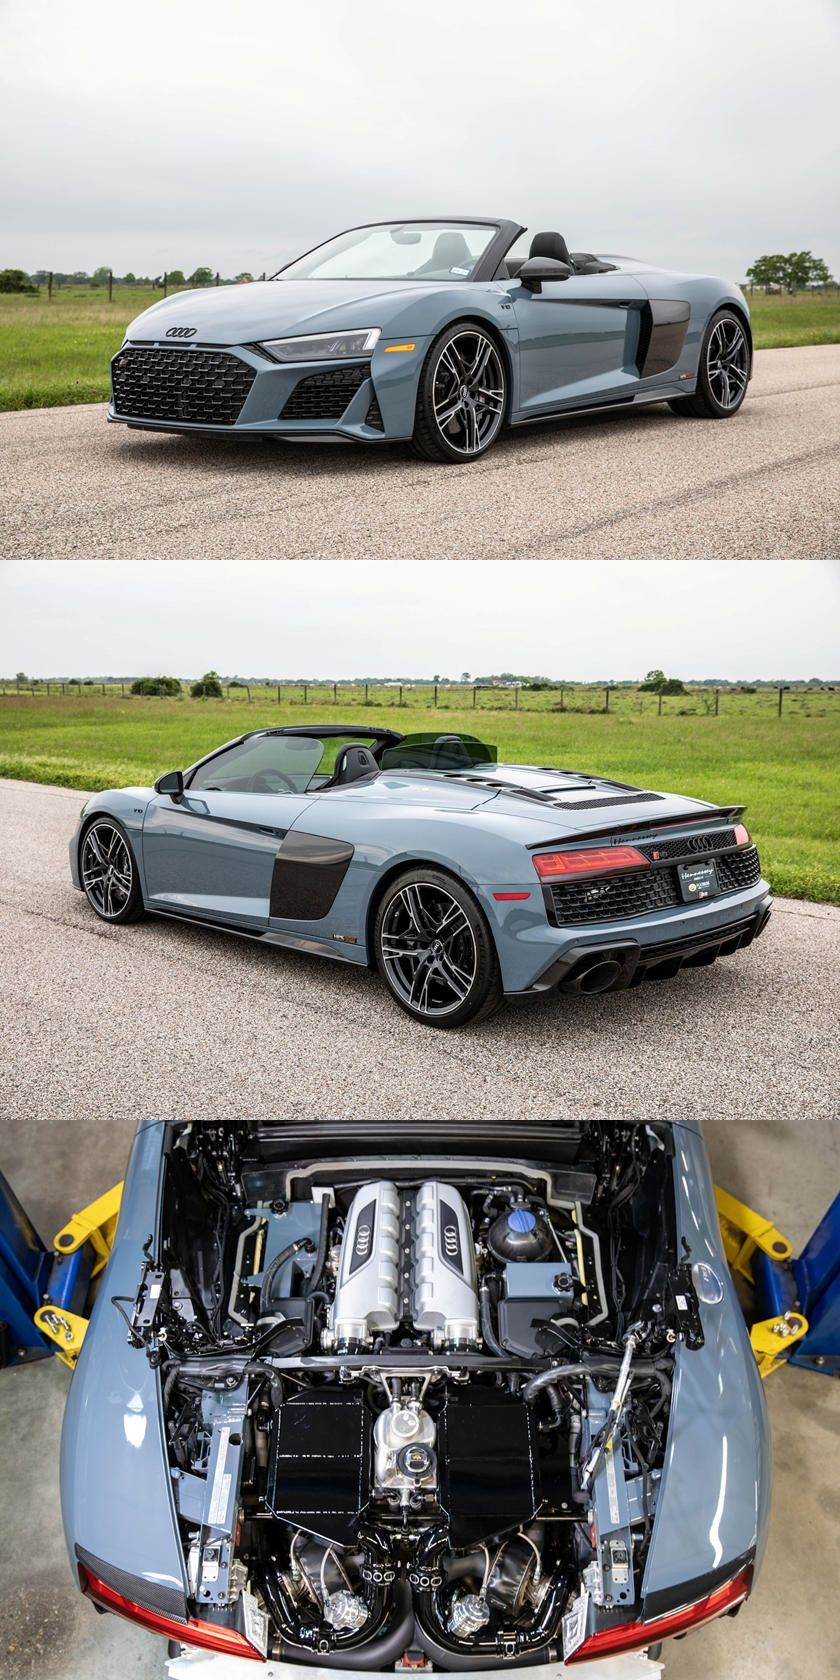 Audi R8 V10 Transforms Into 912 Hp Guided Missile Because The Package Costs More Than A Shelby Gt500 In 2020 Audi Audi R8 V10 Audi R8